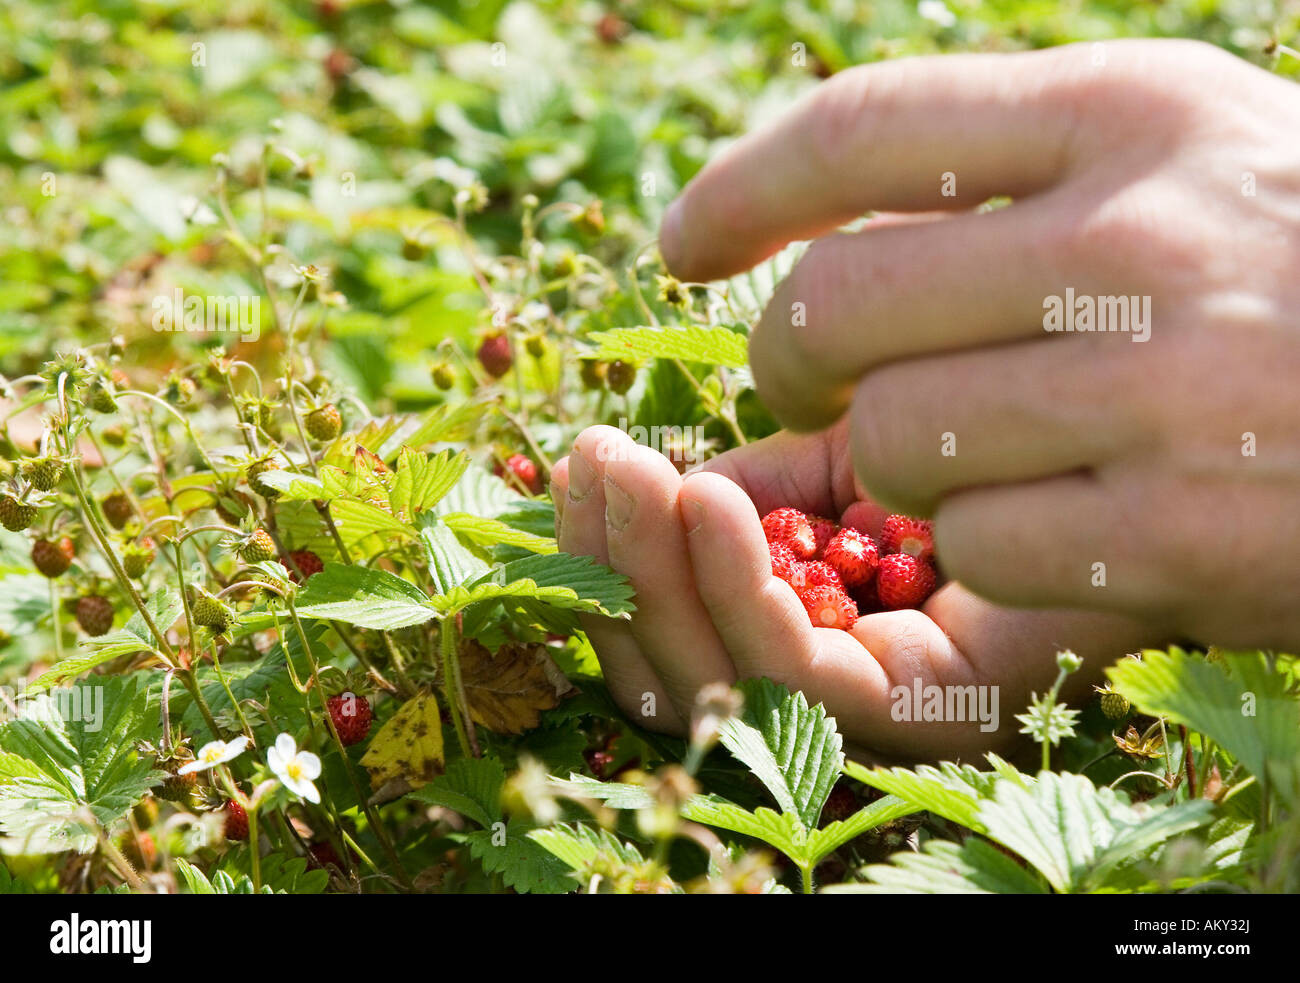 Harvesting wild strawberries for the production of remedies at the Weleda Company Stock Photo